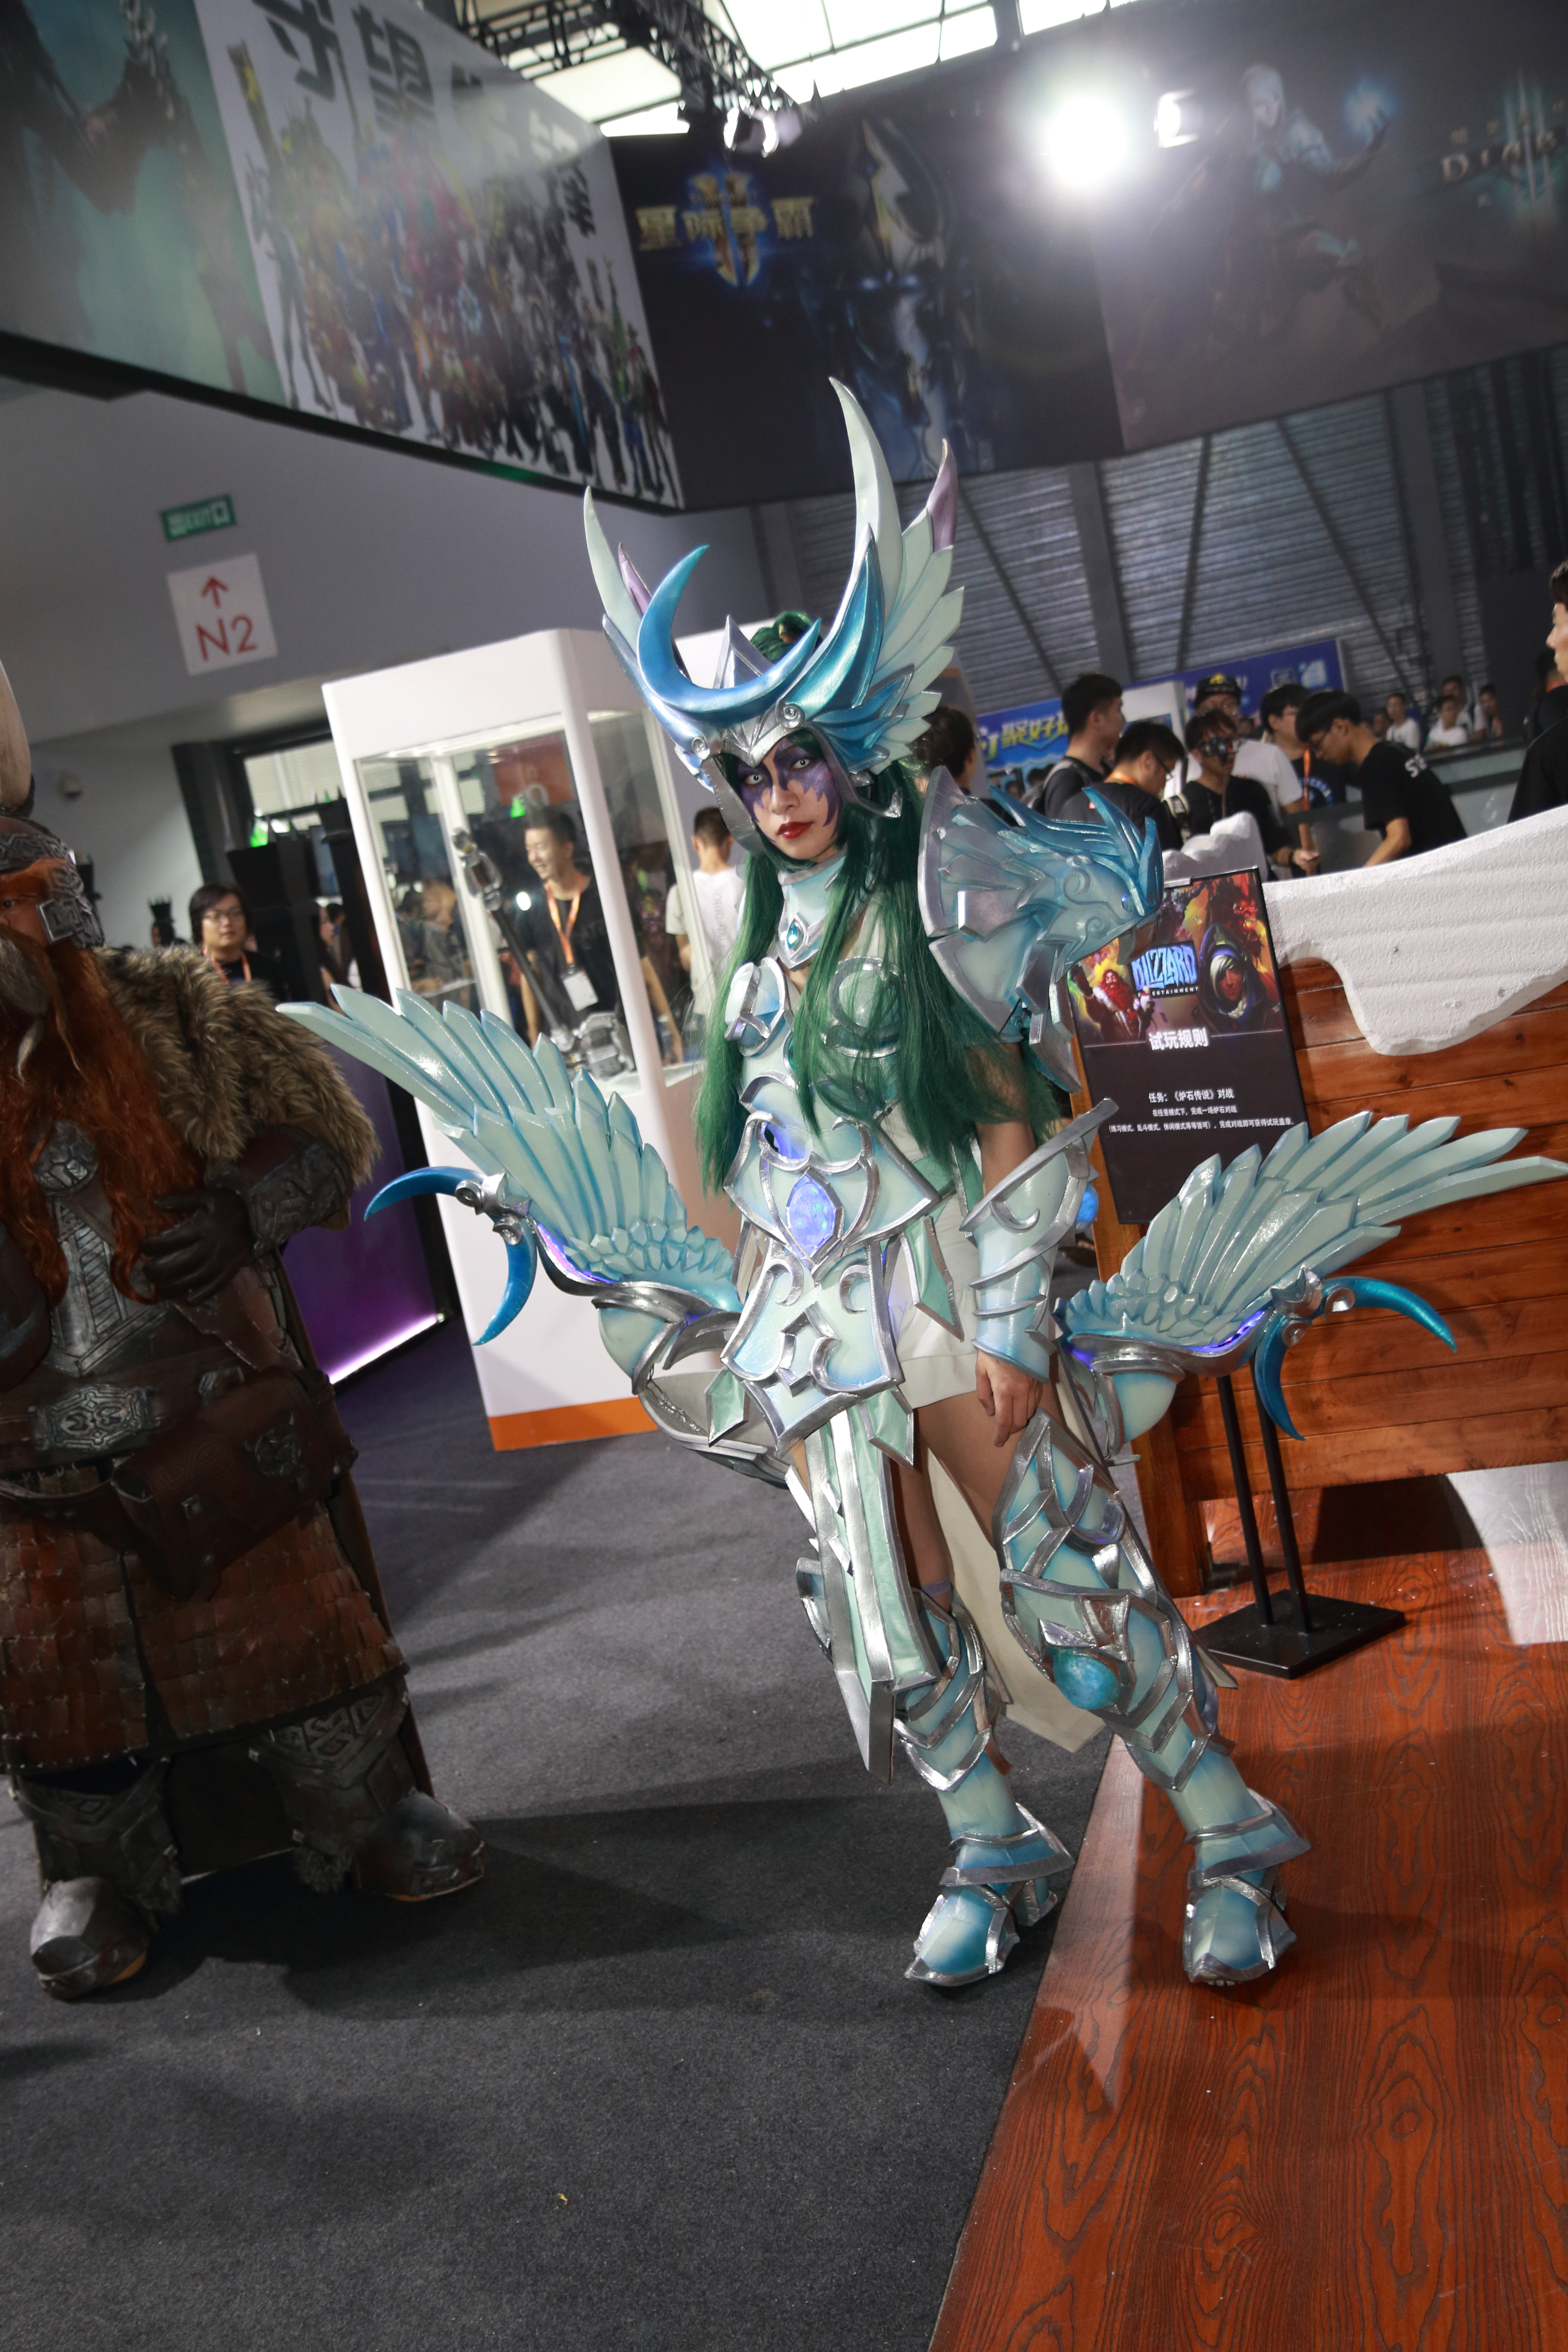 Free download high resolution image - free image free photo free stock image public domain picture -Chinajoy15